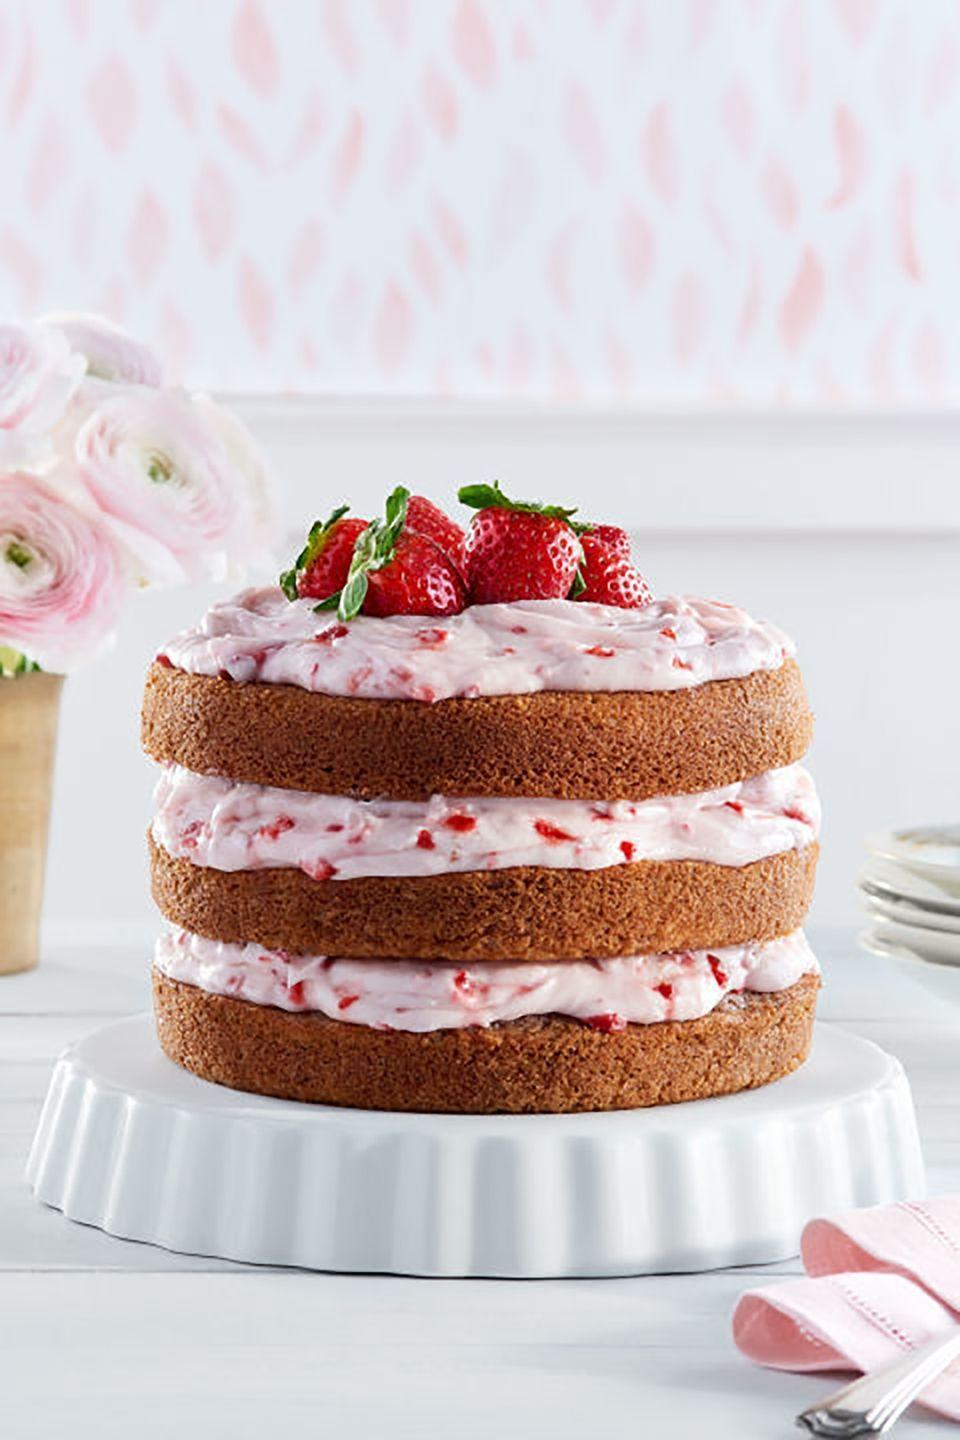 "<p>The strawberry cream cheese frosting on this gorgeous cake is irresistible. </p><p><strong><a href=""https://www.countryliving.com/food-drinks/recipes/a37720/strawberry-limeade-cake-strawberry-cream-cheese-frosting-recipe/"" rel=""nofollow noopener"" target=""_blank"" data-ylk=""slk:Get the recipe"" class=""link rapid-noclick-resp"">Get the recipe</a>.</strong></p><p><a class=""link rapid-noclick-resp"" href=""https://go.redirectingat.com?id=74968X1596630&url=https%3A%2F%2Fwww.williams-sonoma.com%2Fproducts%2Fkitchenaid-artisan-mini-with-flex-edge-beater%2F&sref=https%3A%2F%2Fwww.countryliving.com%2Ffood-drinks%2Fg3185%2Fmothers-day-cakes%2F"" rel=""nofollow noopener"" target=""_blank"" data-ylk=""slk:SHOP STAND MIXERS"">SHOP STAND MIXERS</a></p>"